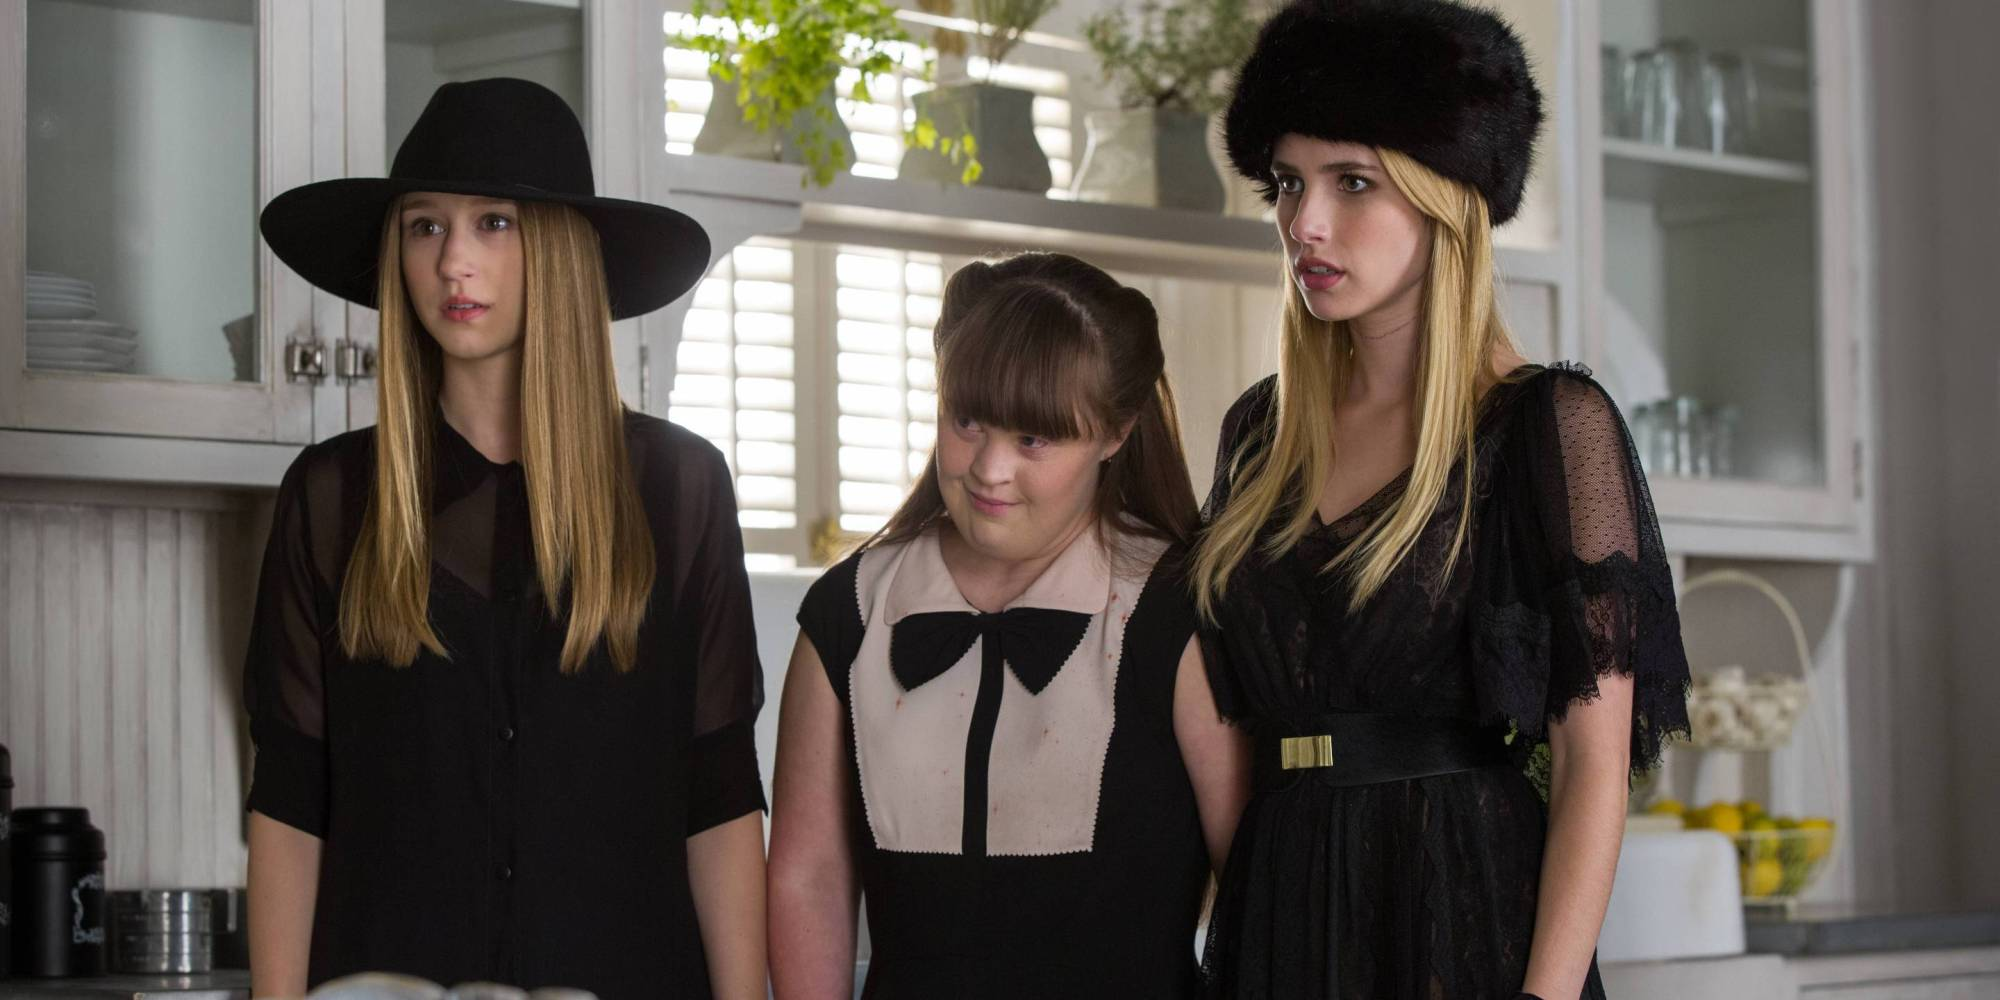 Emma Roberts And Taissa Farmiga: 'American Horror Story: Coven' Episode 9 Recap: A New